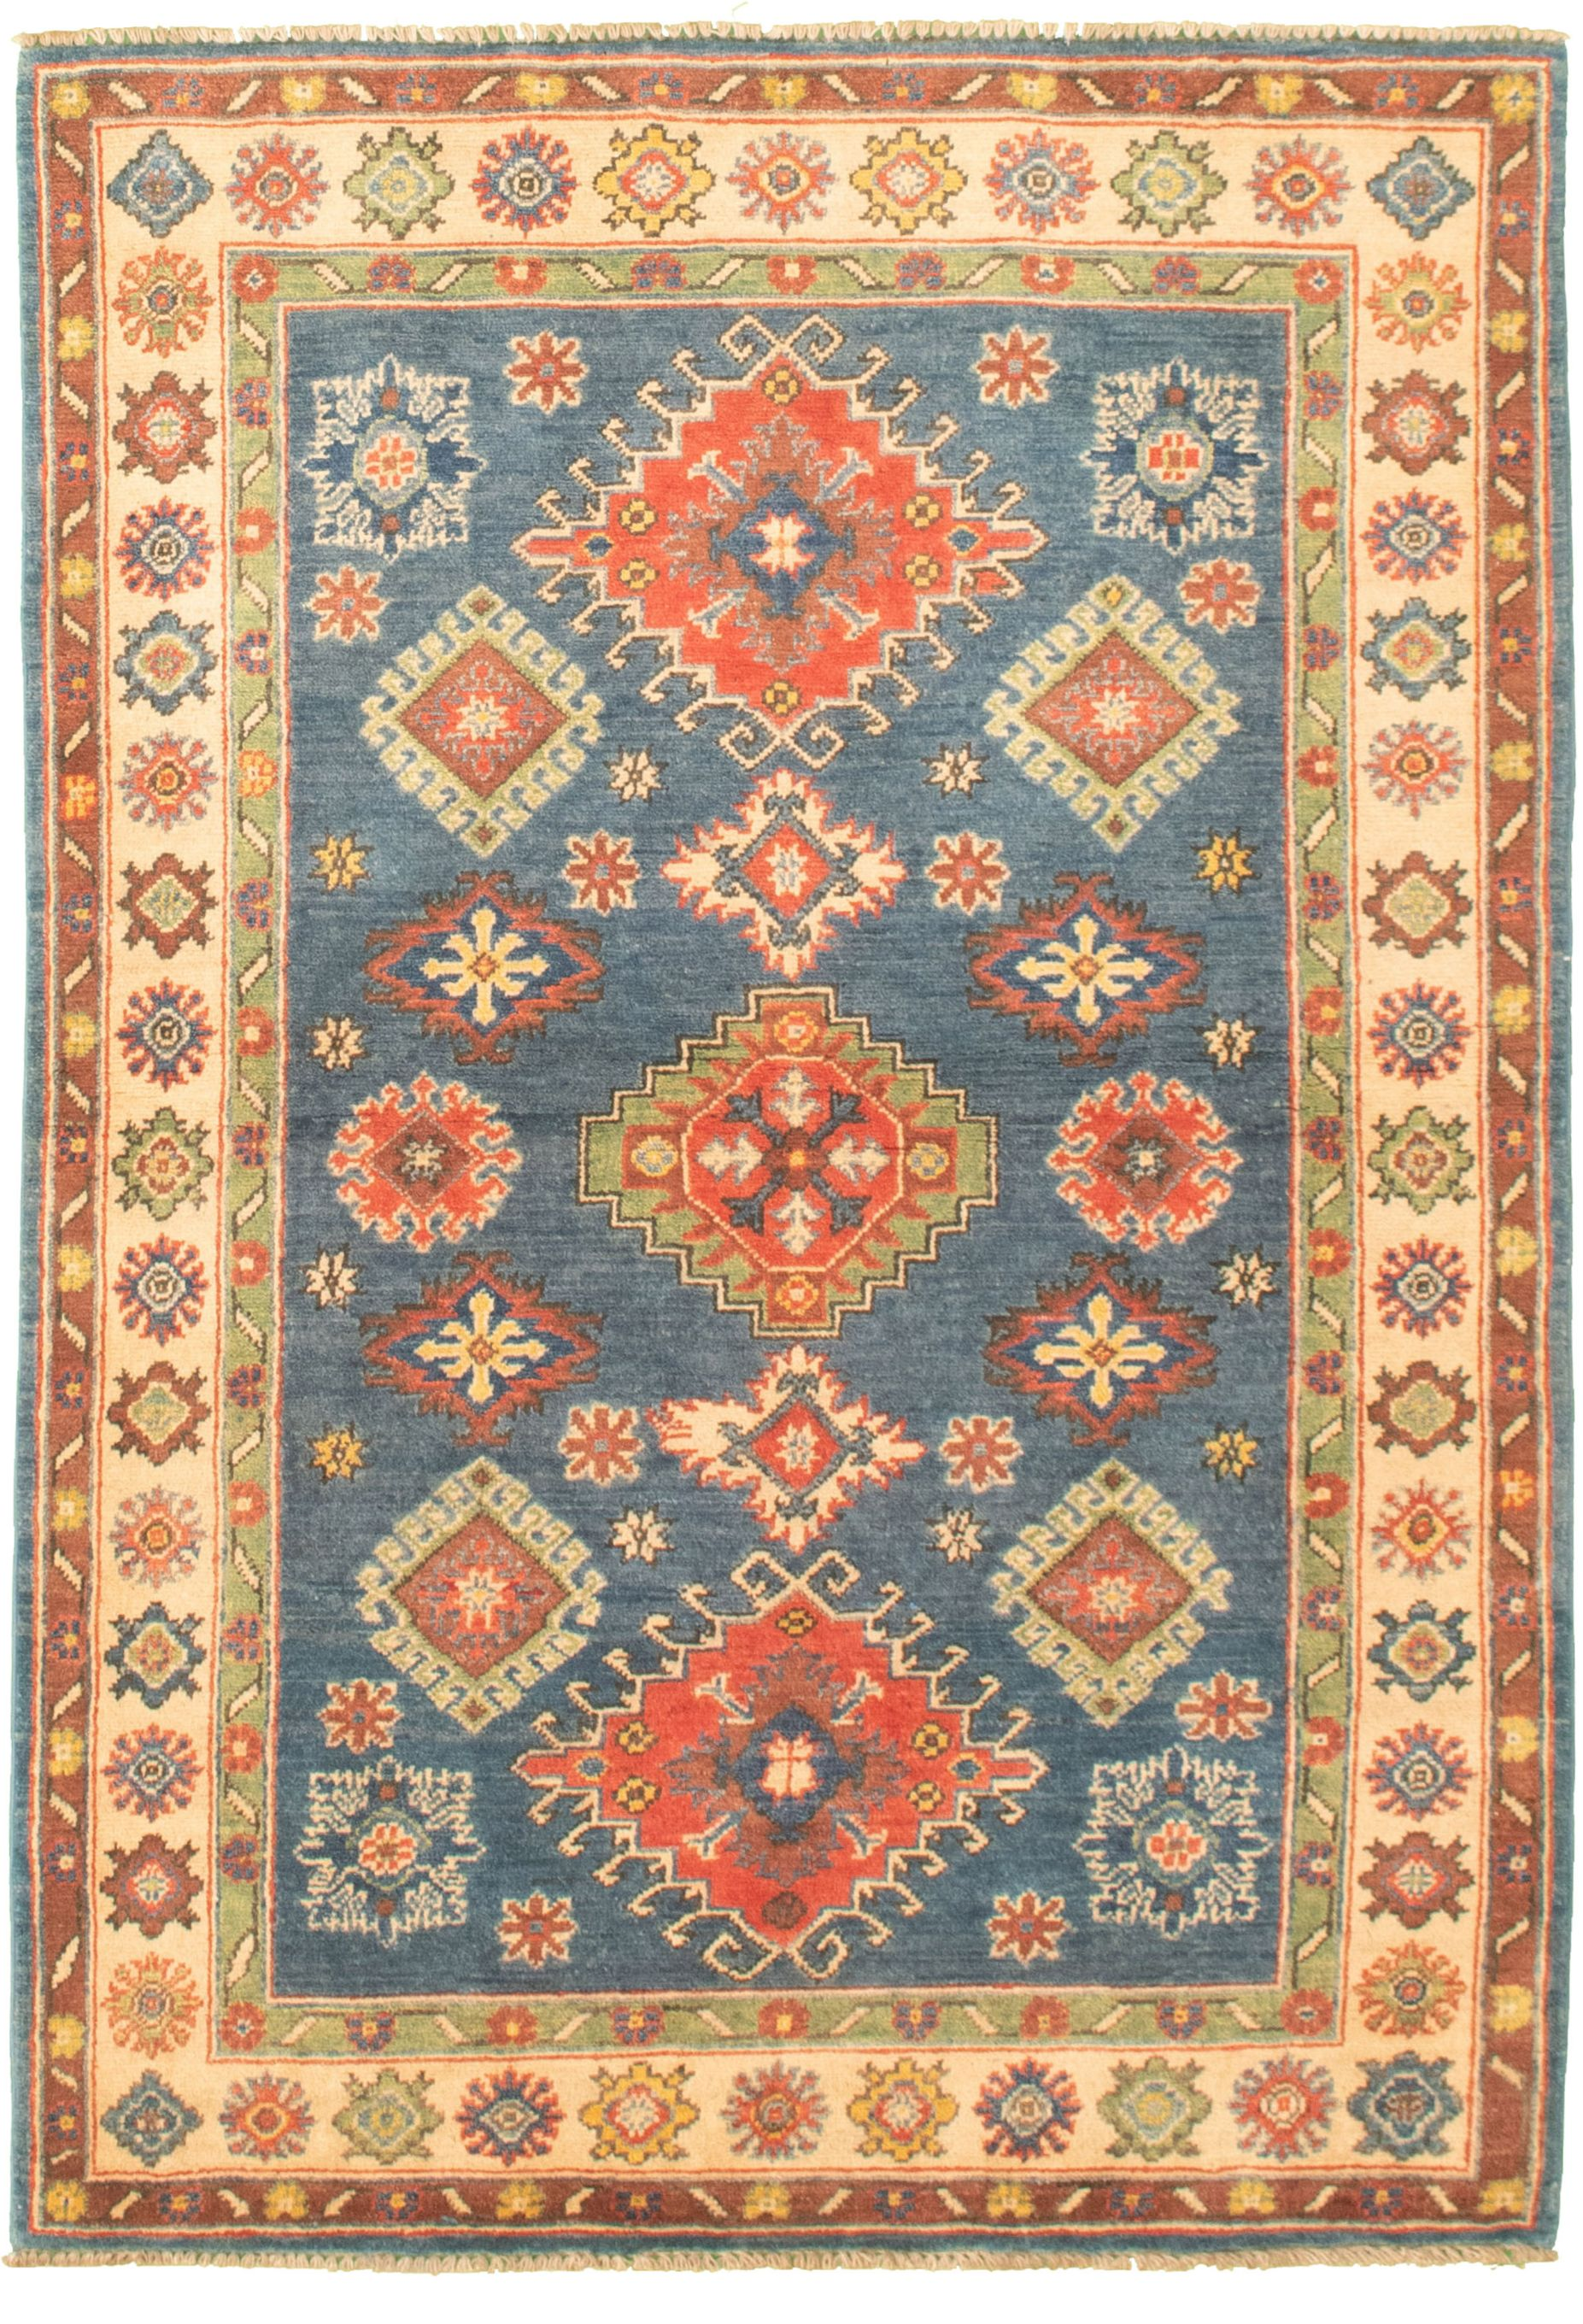 """Hand-knotted Finest Gazni Blue Wool Rug 3'11"""" x 5'11""""  Size: 3'11"""" x 5'11"""""""